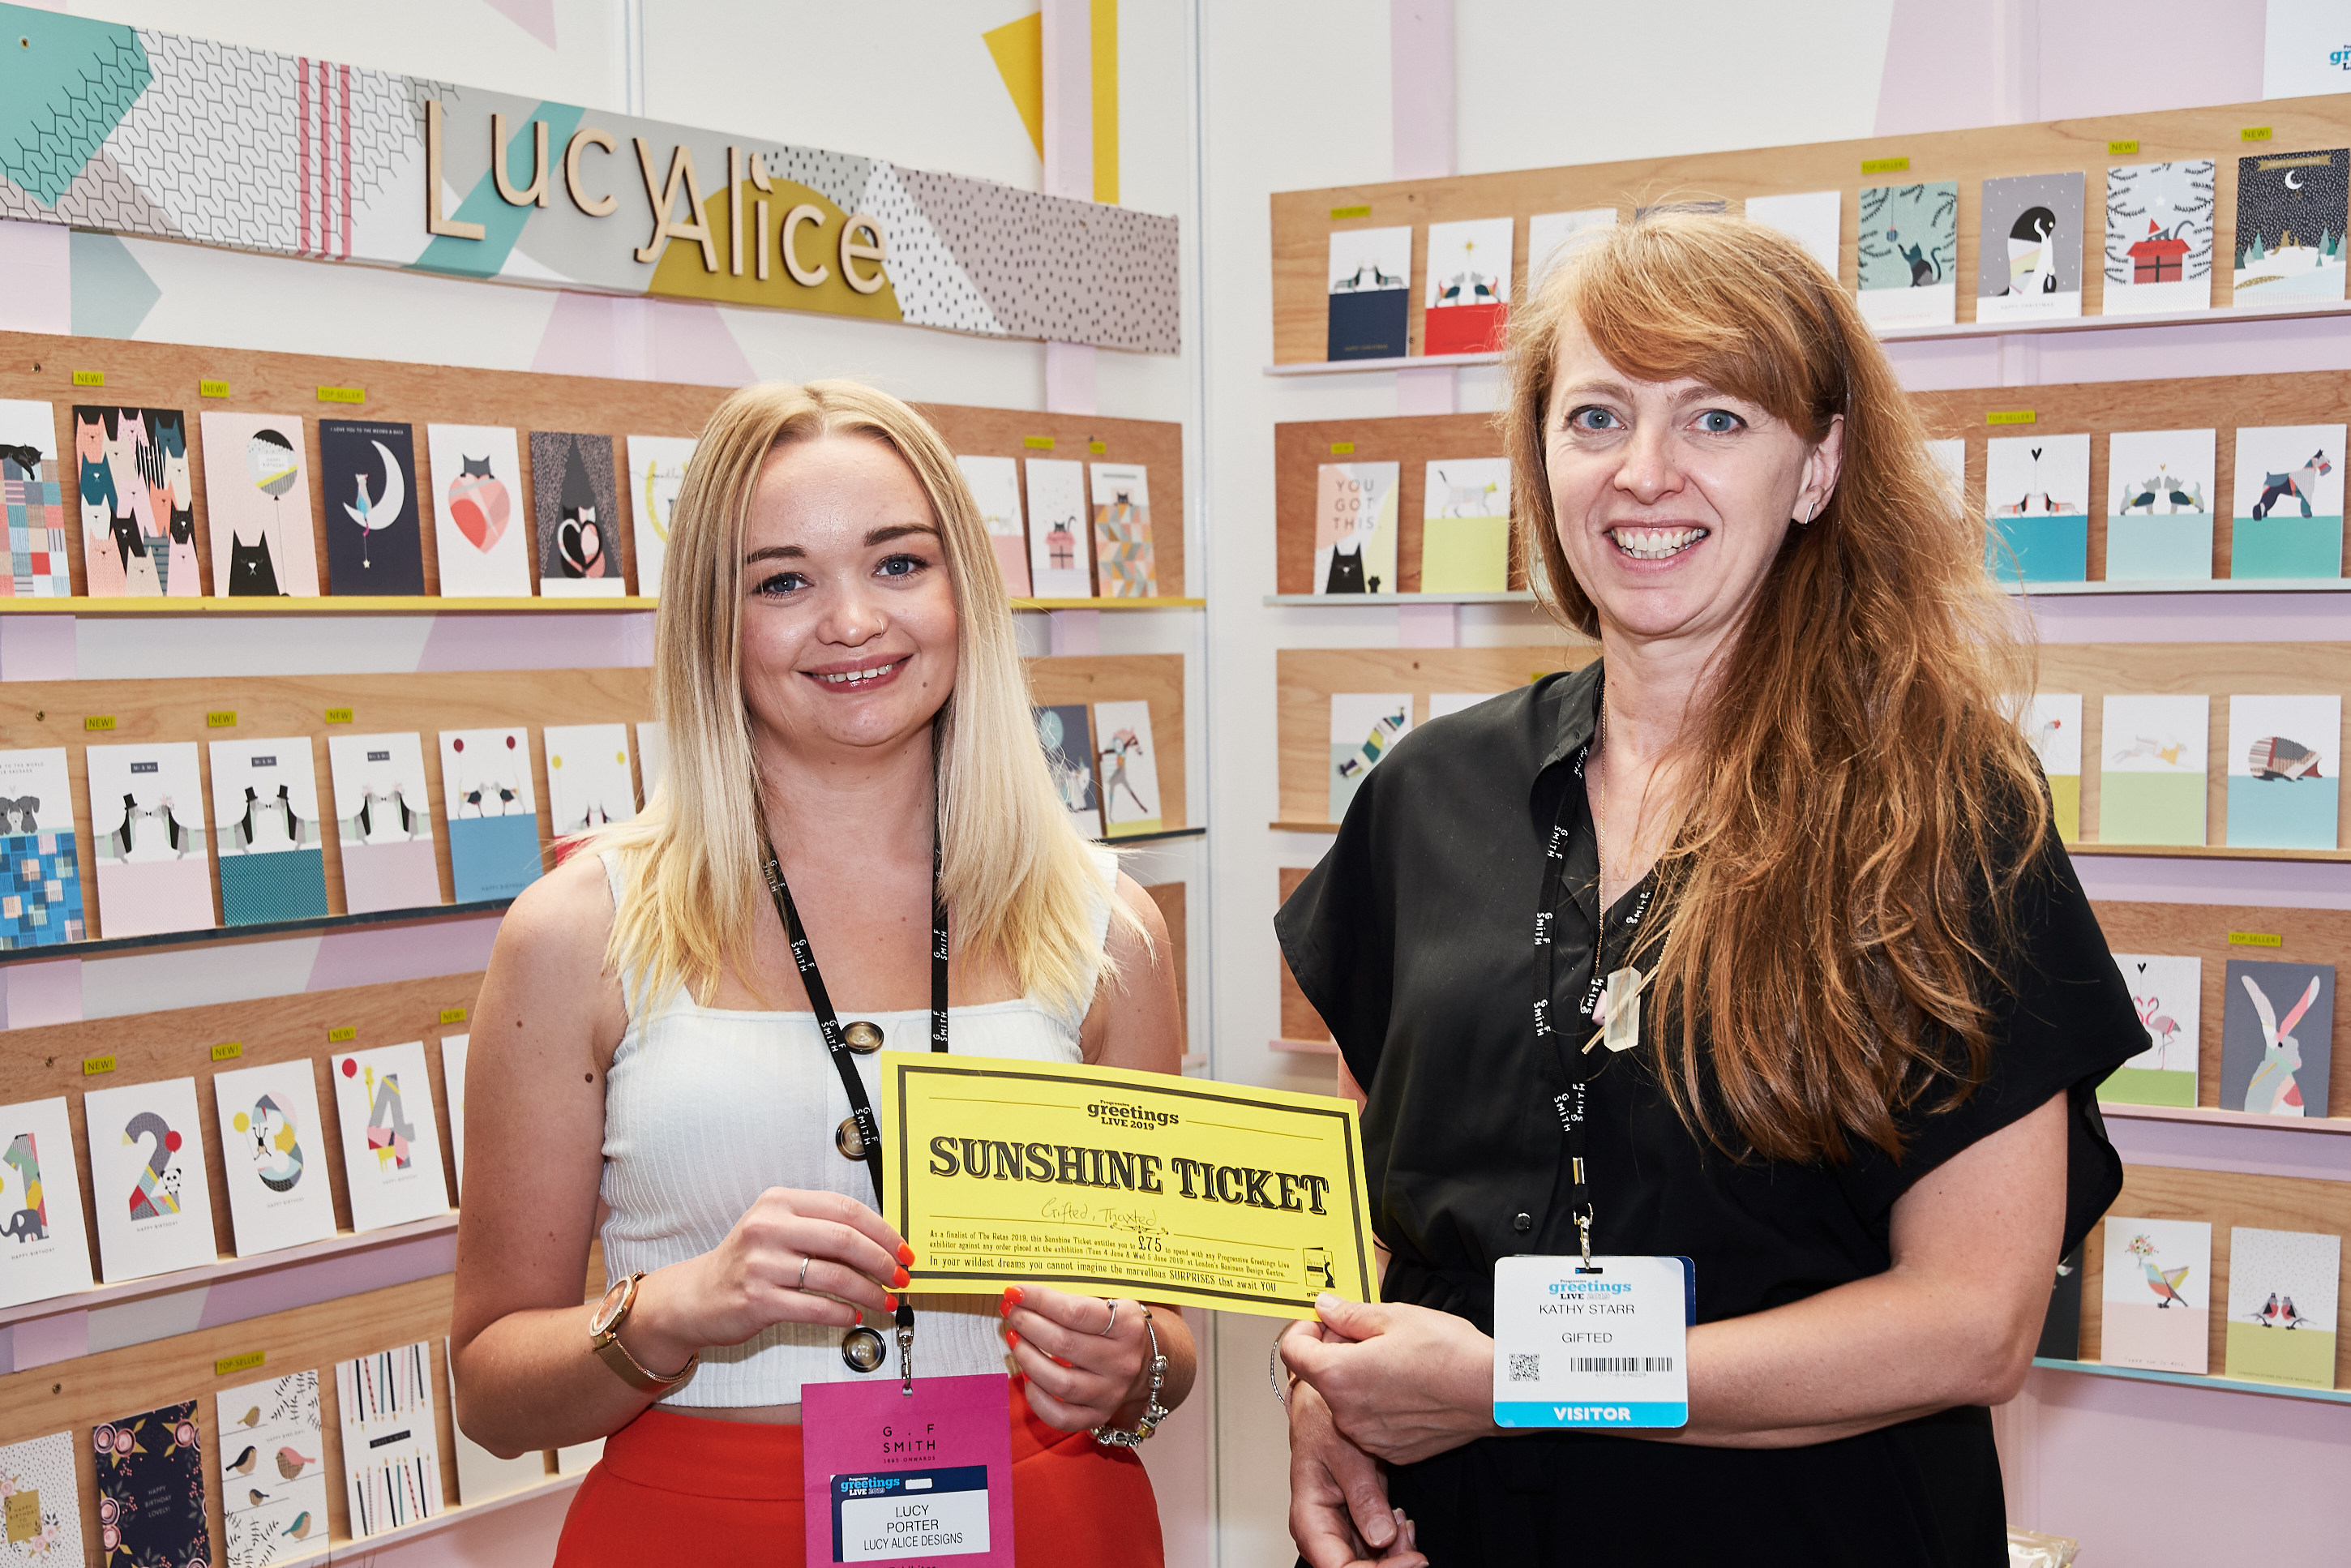 Above: Gifted's Kathy Starr (right) spending her Sunshine Ticket with Lucy Porter of Lucy Alice at PG Live.